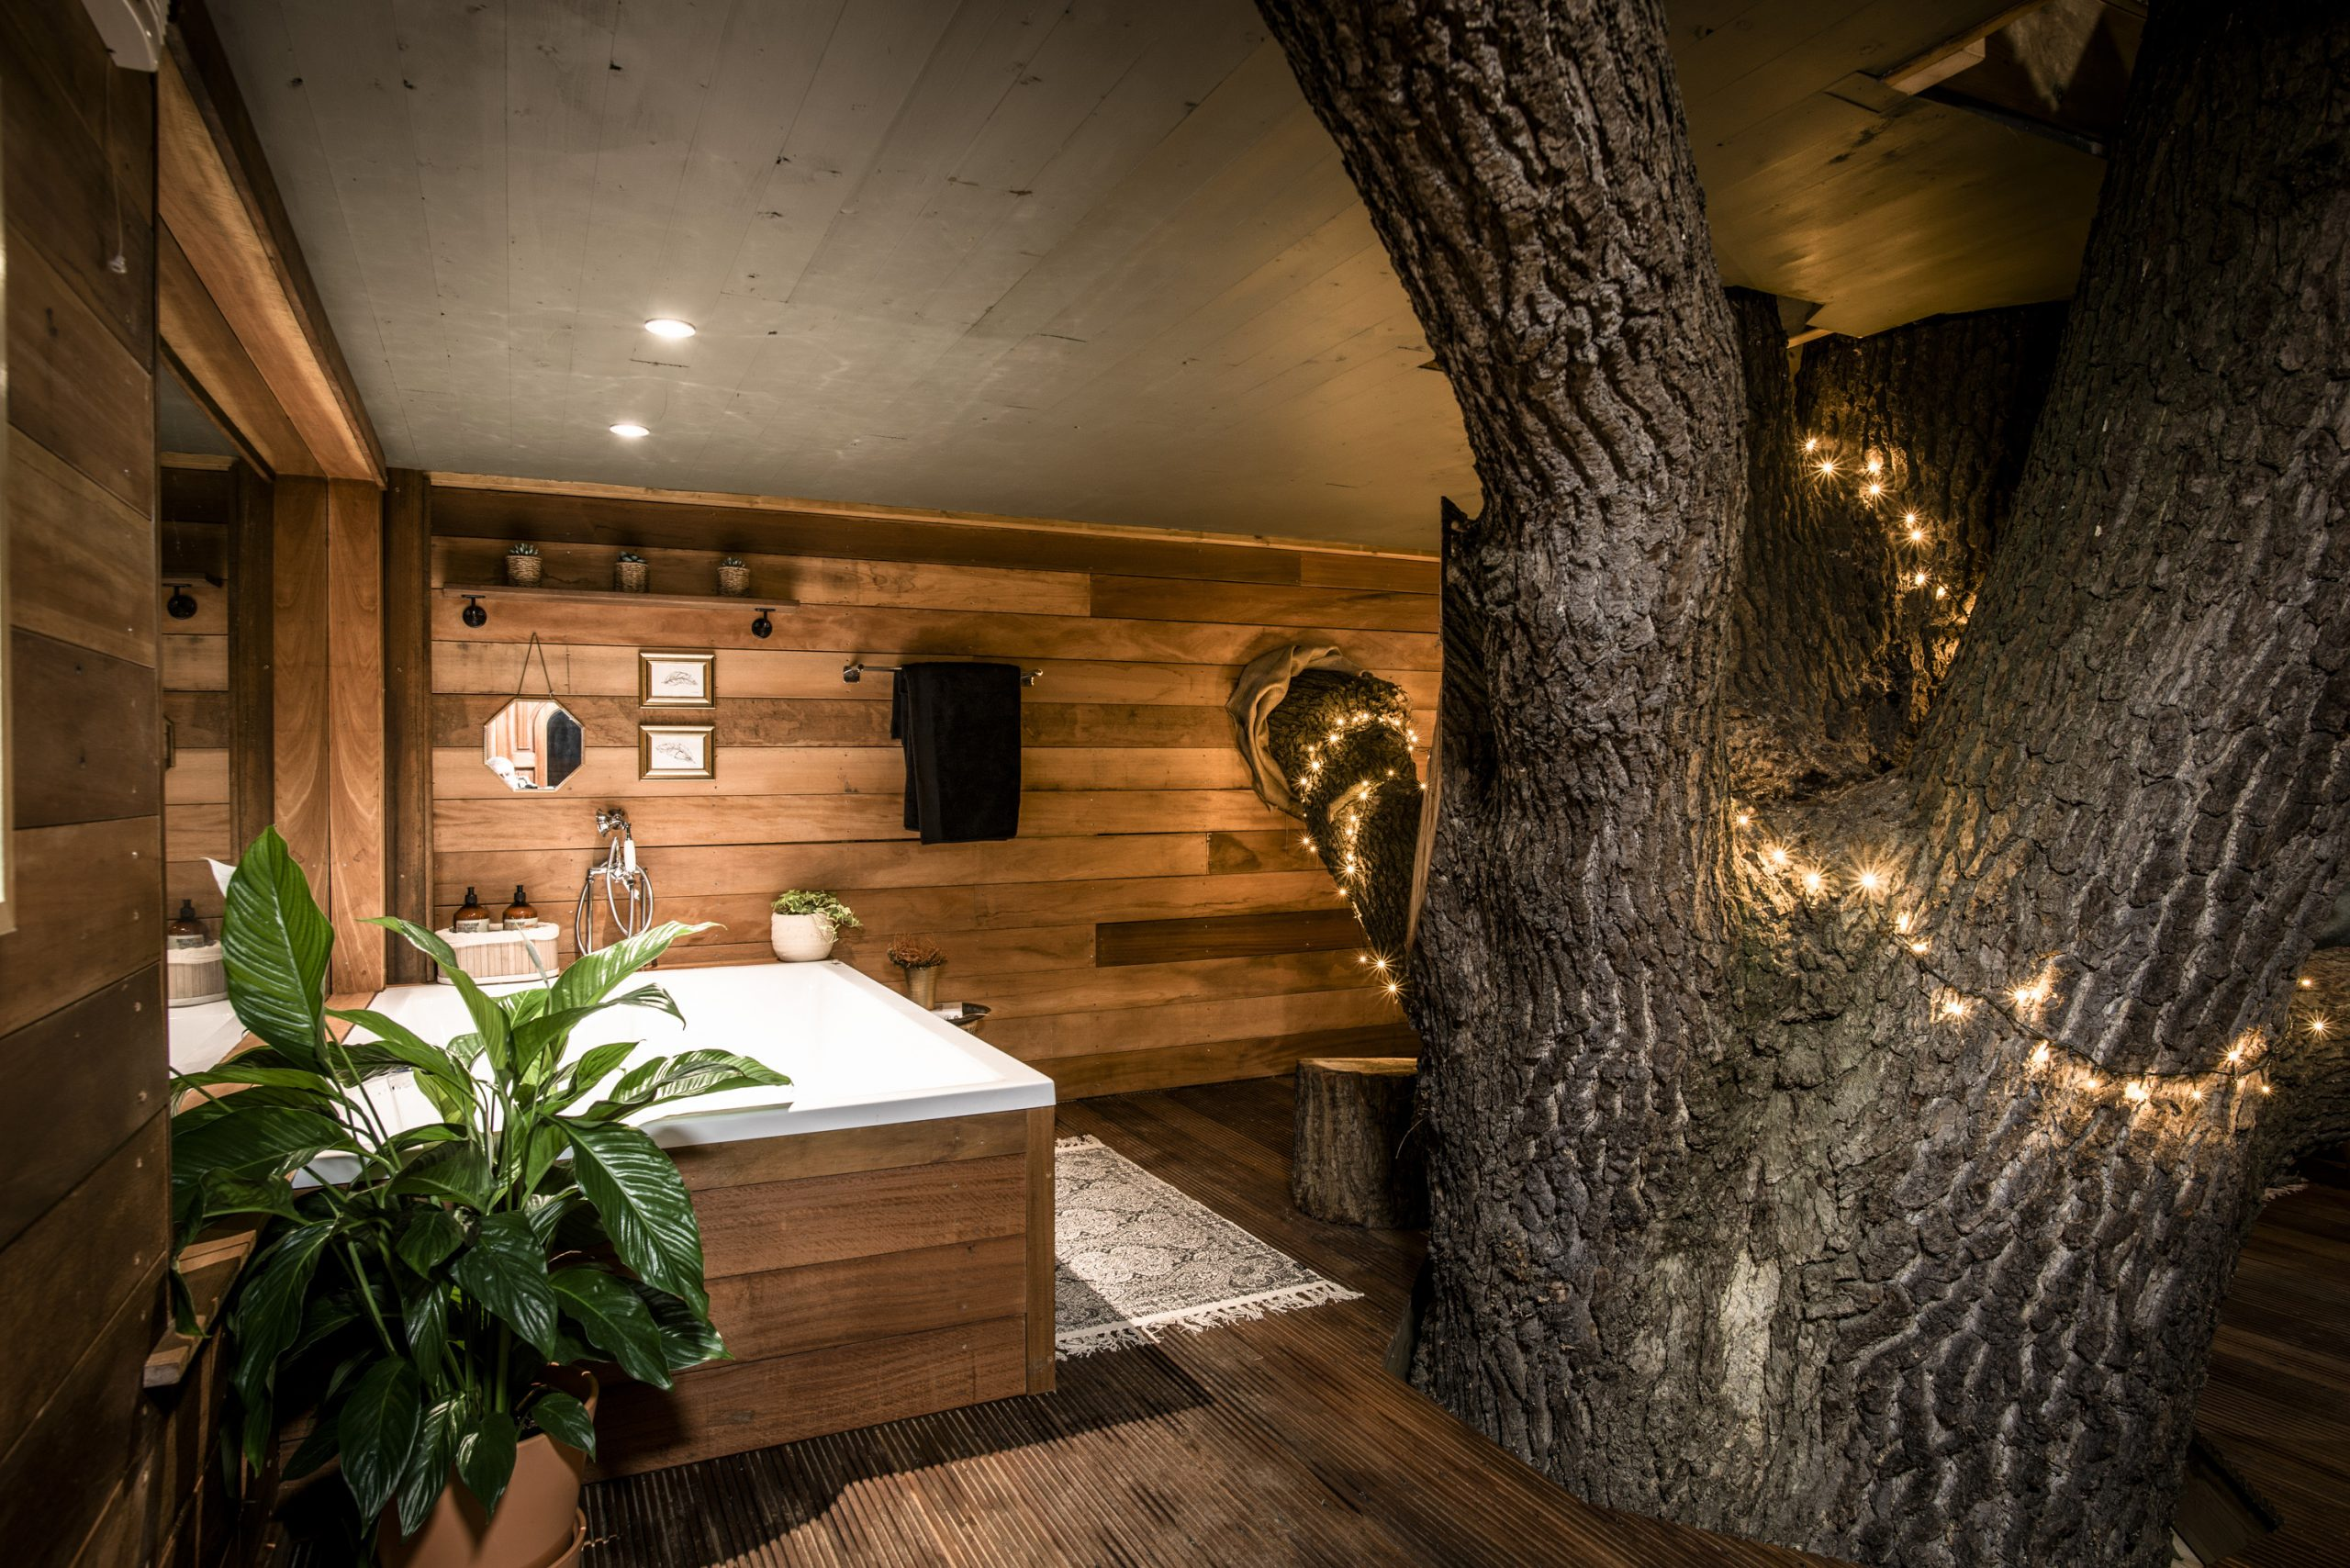 The double bath with cedar cladded interior